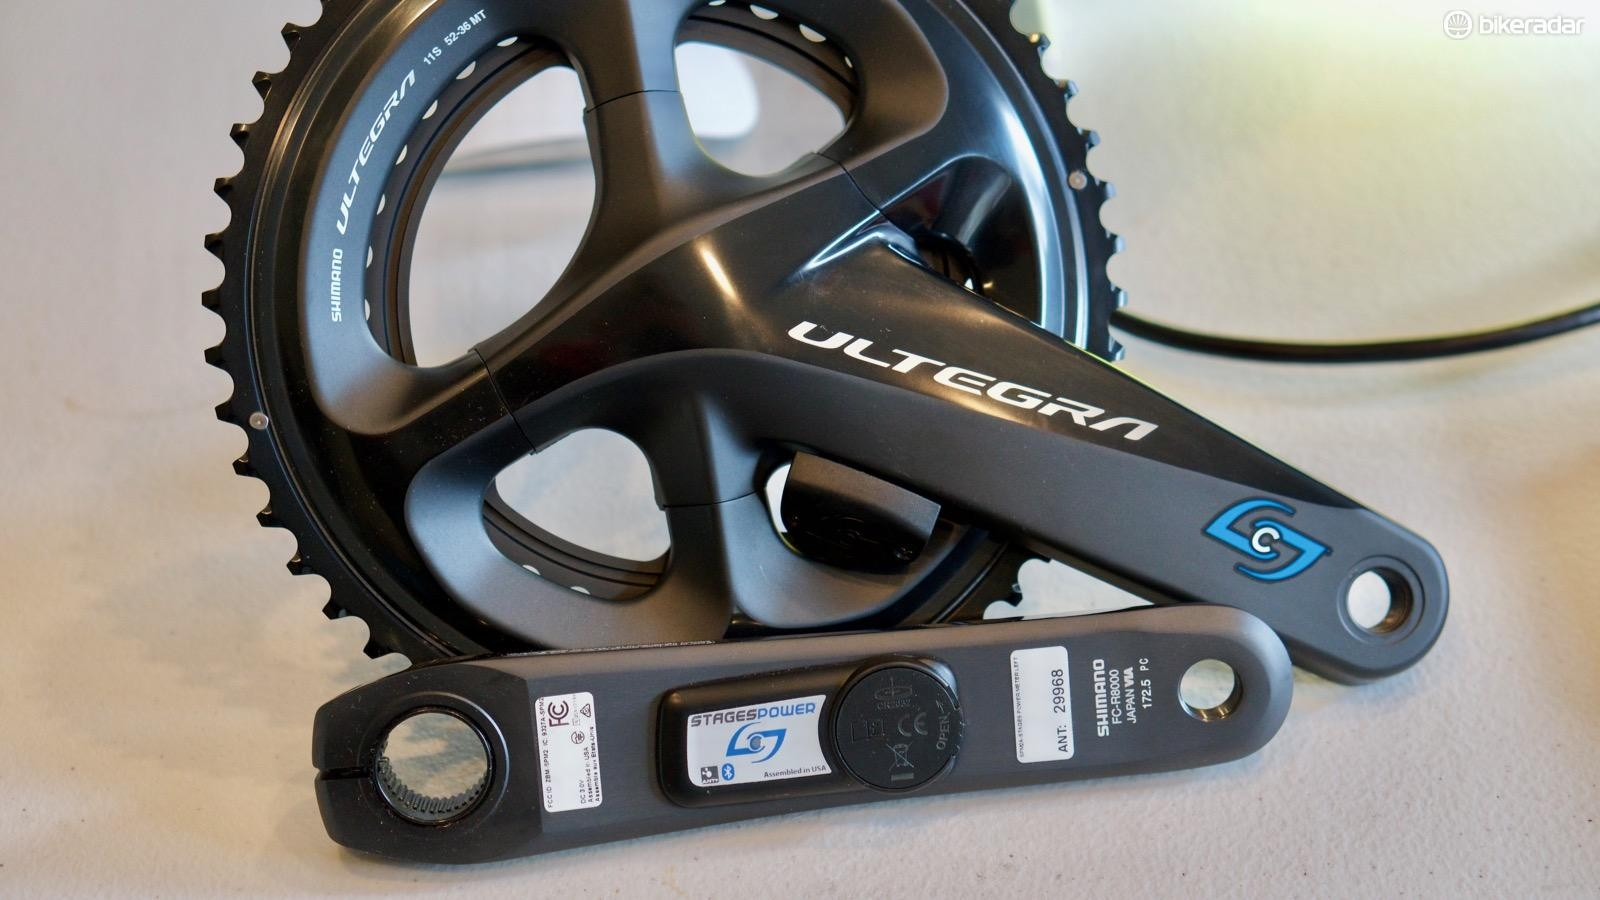 The Stages Power LR Ultegra is the third-generation of power meters from the original left-crank meter company